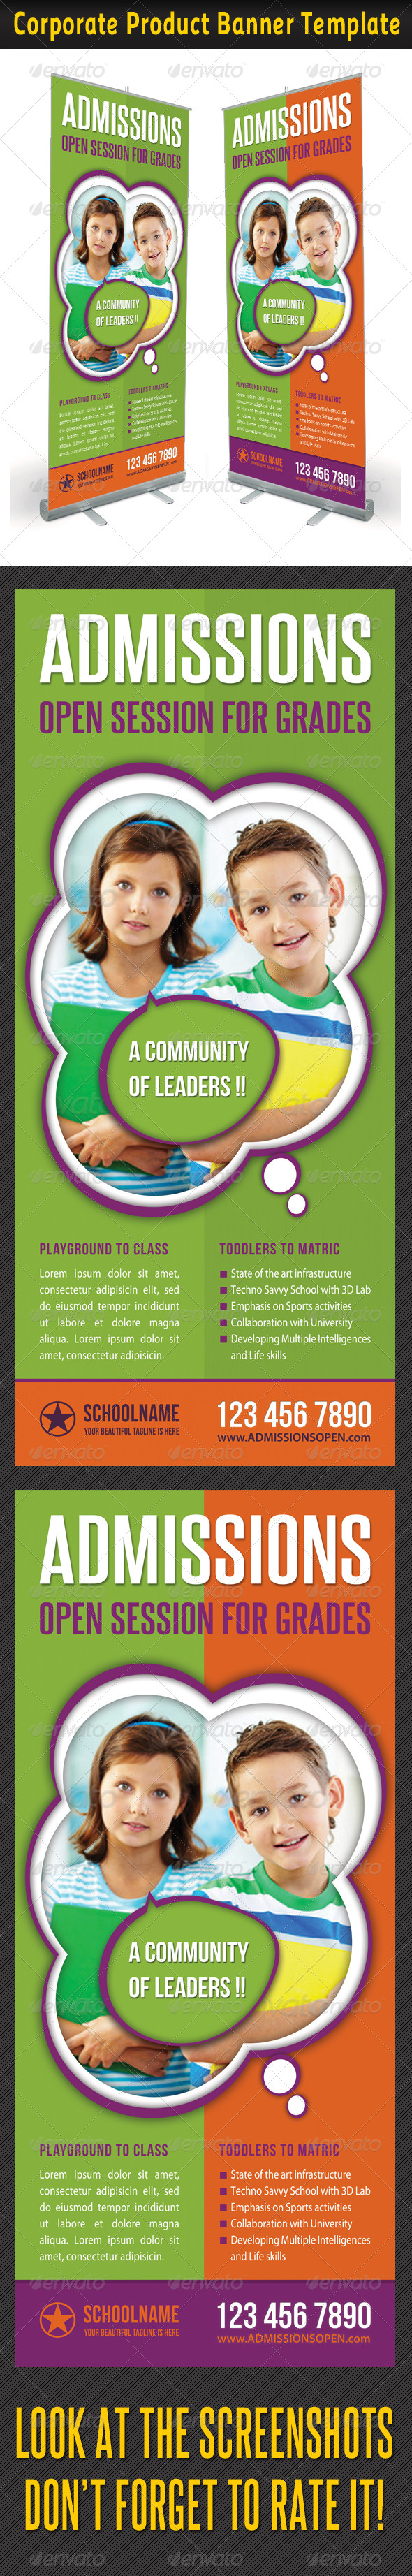 Junior School Promotion Banner Template 02 - Signage Print Templates